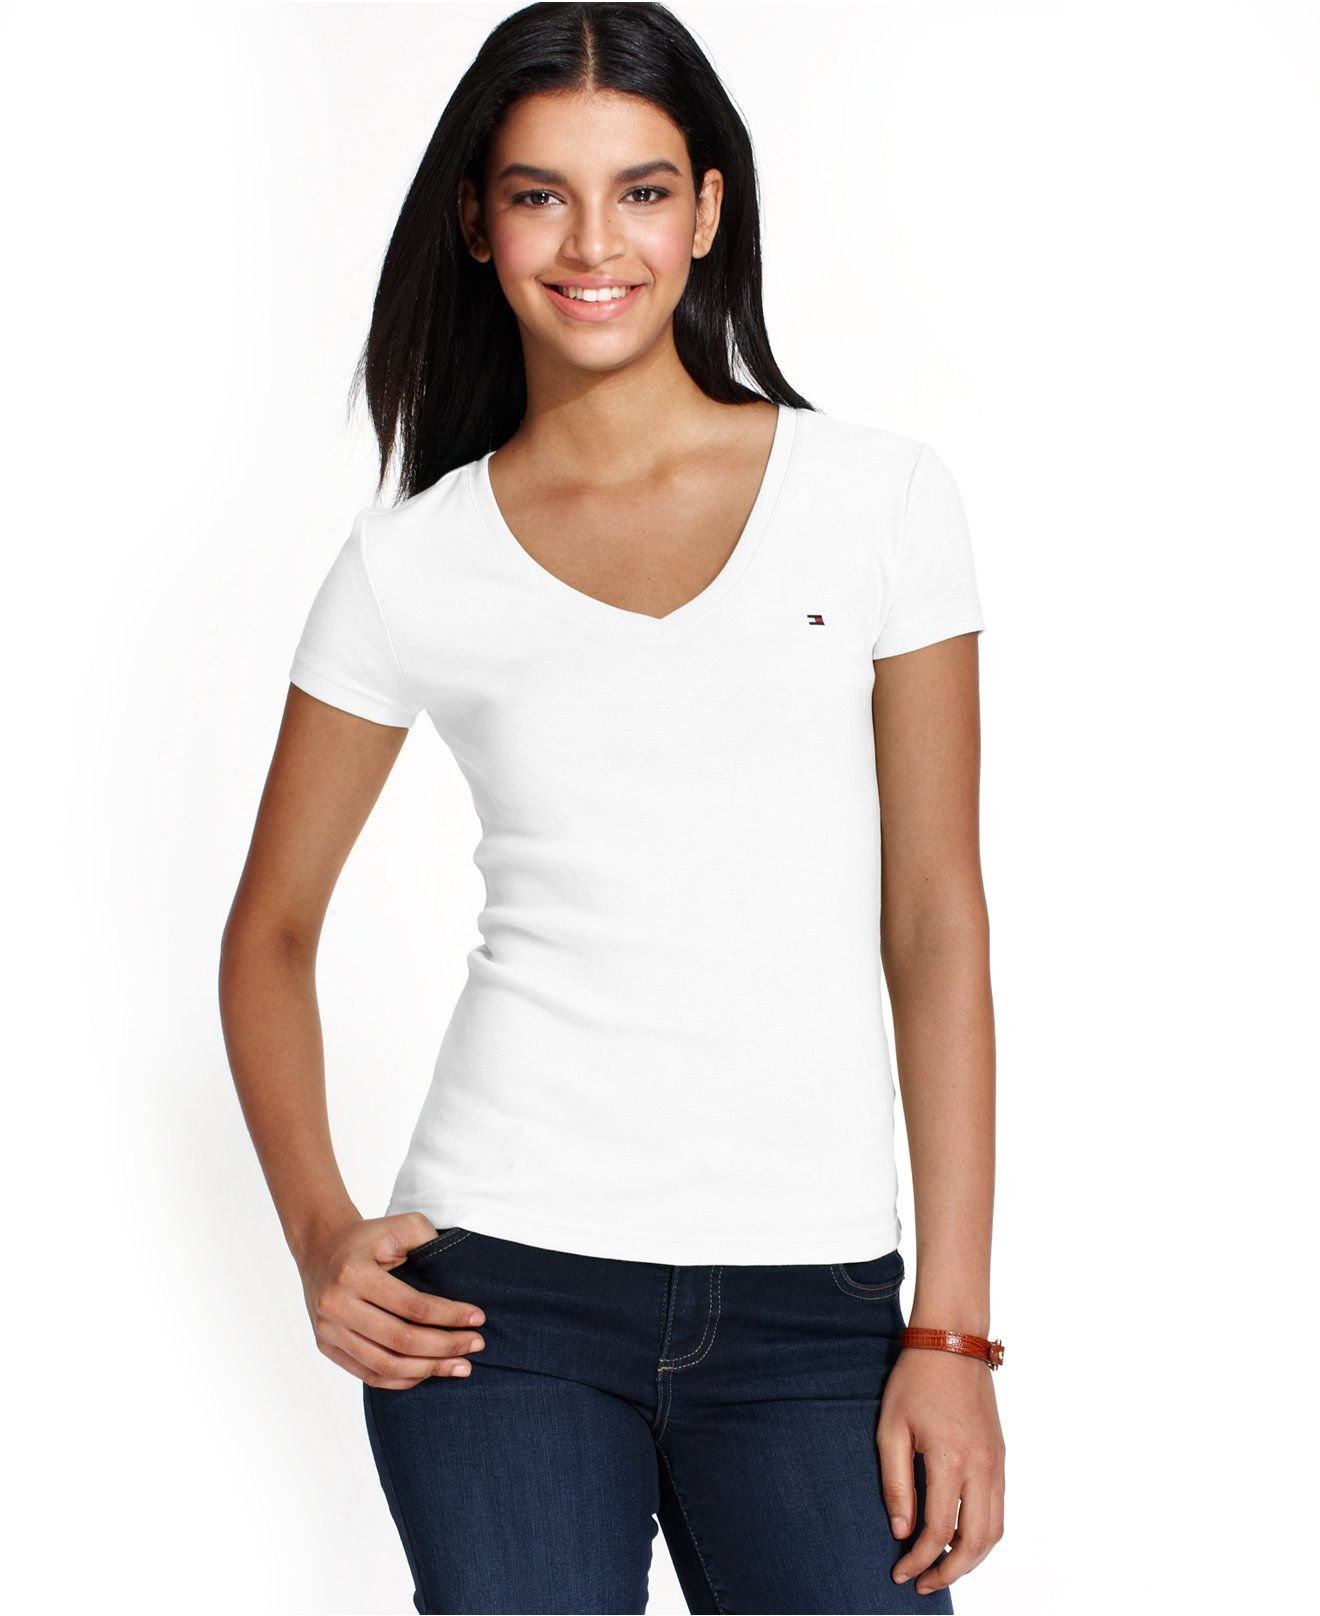 Tommy Hilfiger V-Neck T-Shirt, Created for Macy's - Tops - Women - Macy's